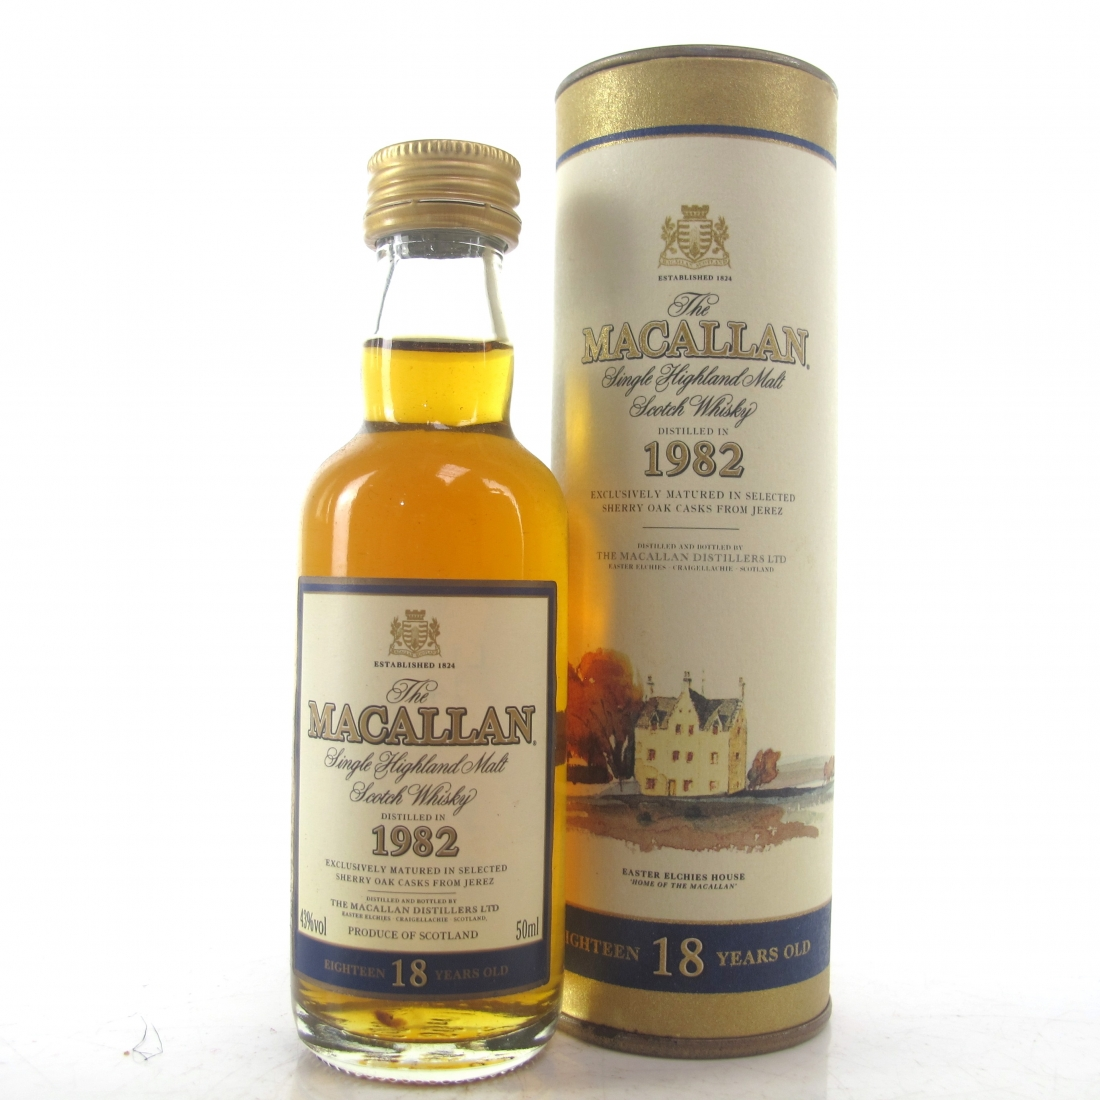 Macallan 18 Year Old 1982 Miniature 5cl